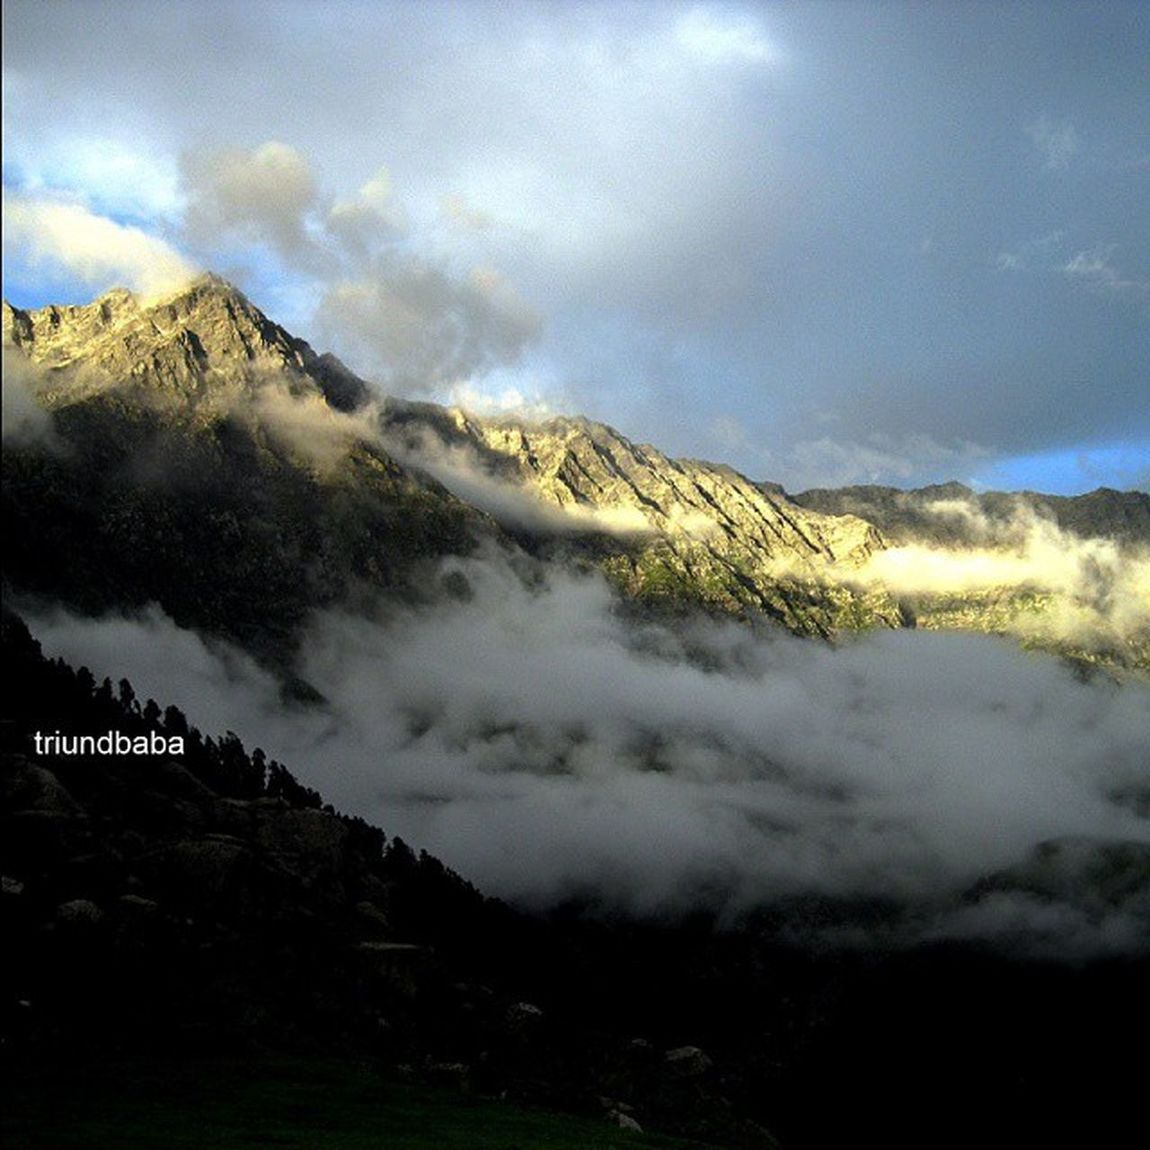 Views from Triund Dhauladhar Mountains IndraharPass MunPeak of Himalayas Sunset India_clicks Mountains Hobby Photography Trekking Hiking on new trail while Camping in SnowLineCafe of Dharamshala